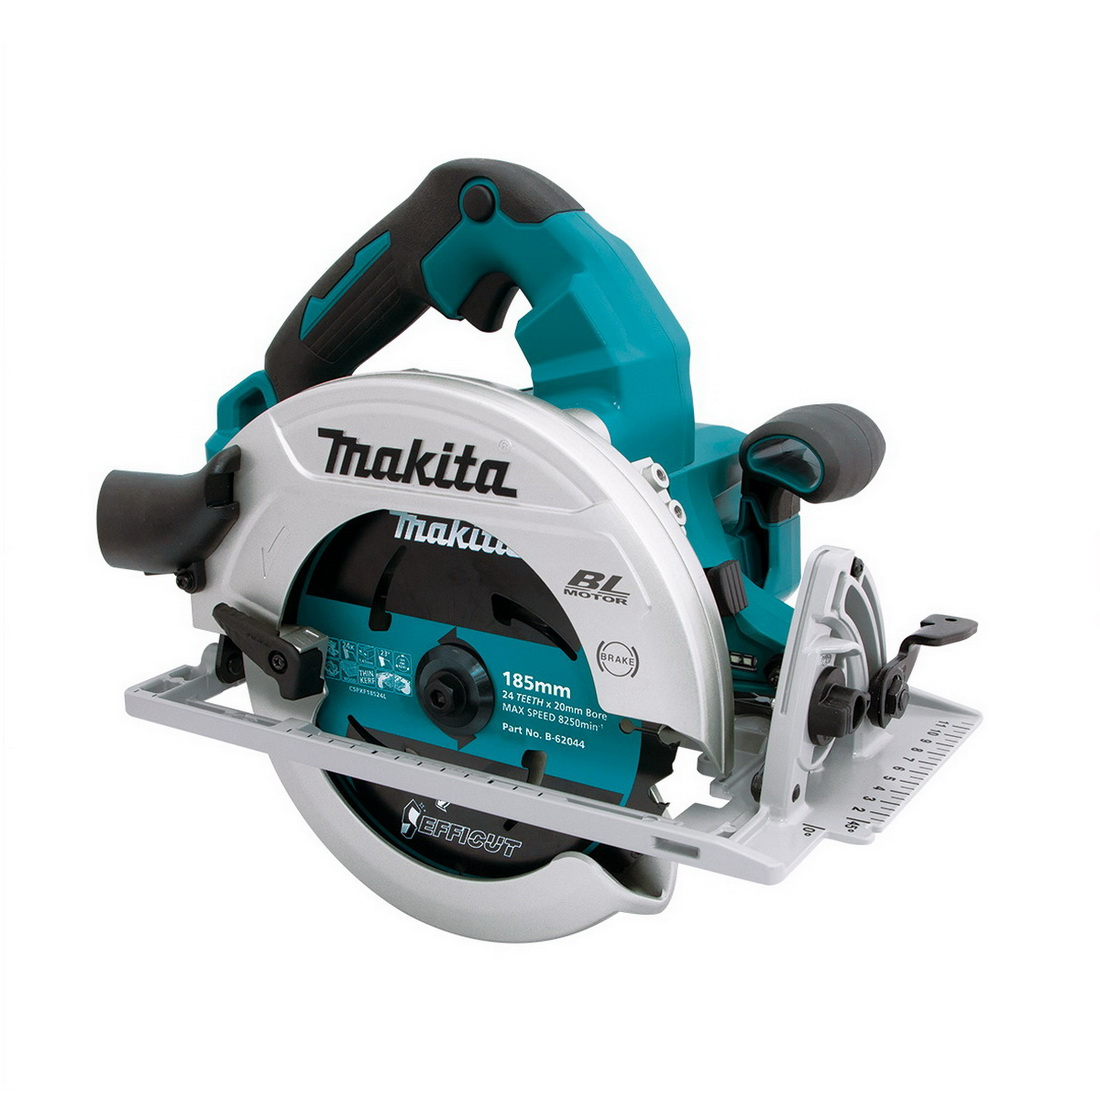 36V 185mm Lithium-Ion Cordless Brushless Circular Saw Skin